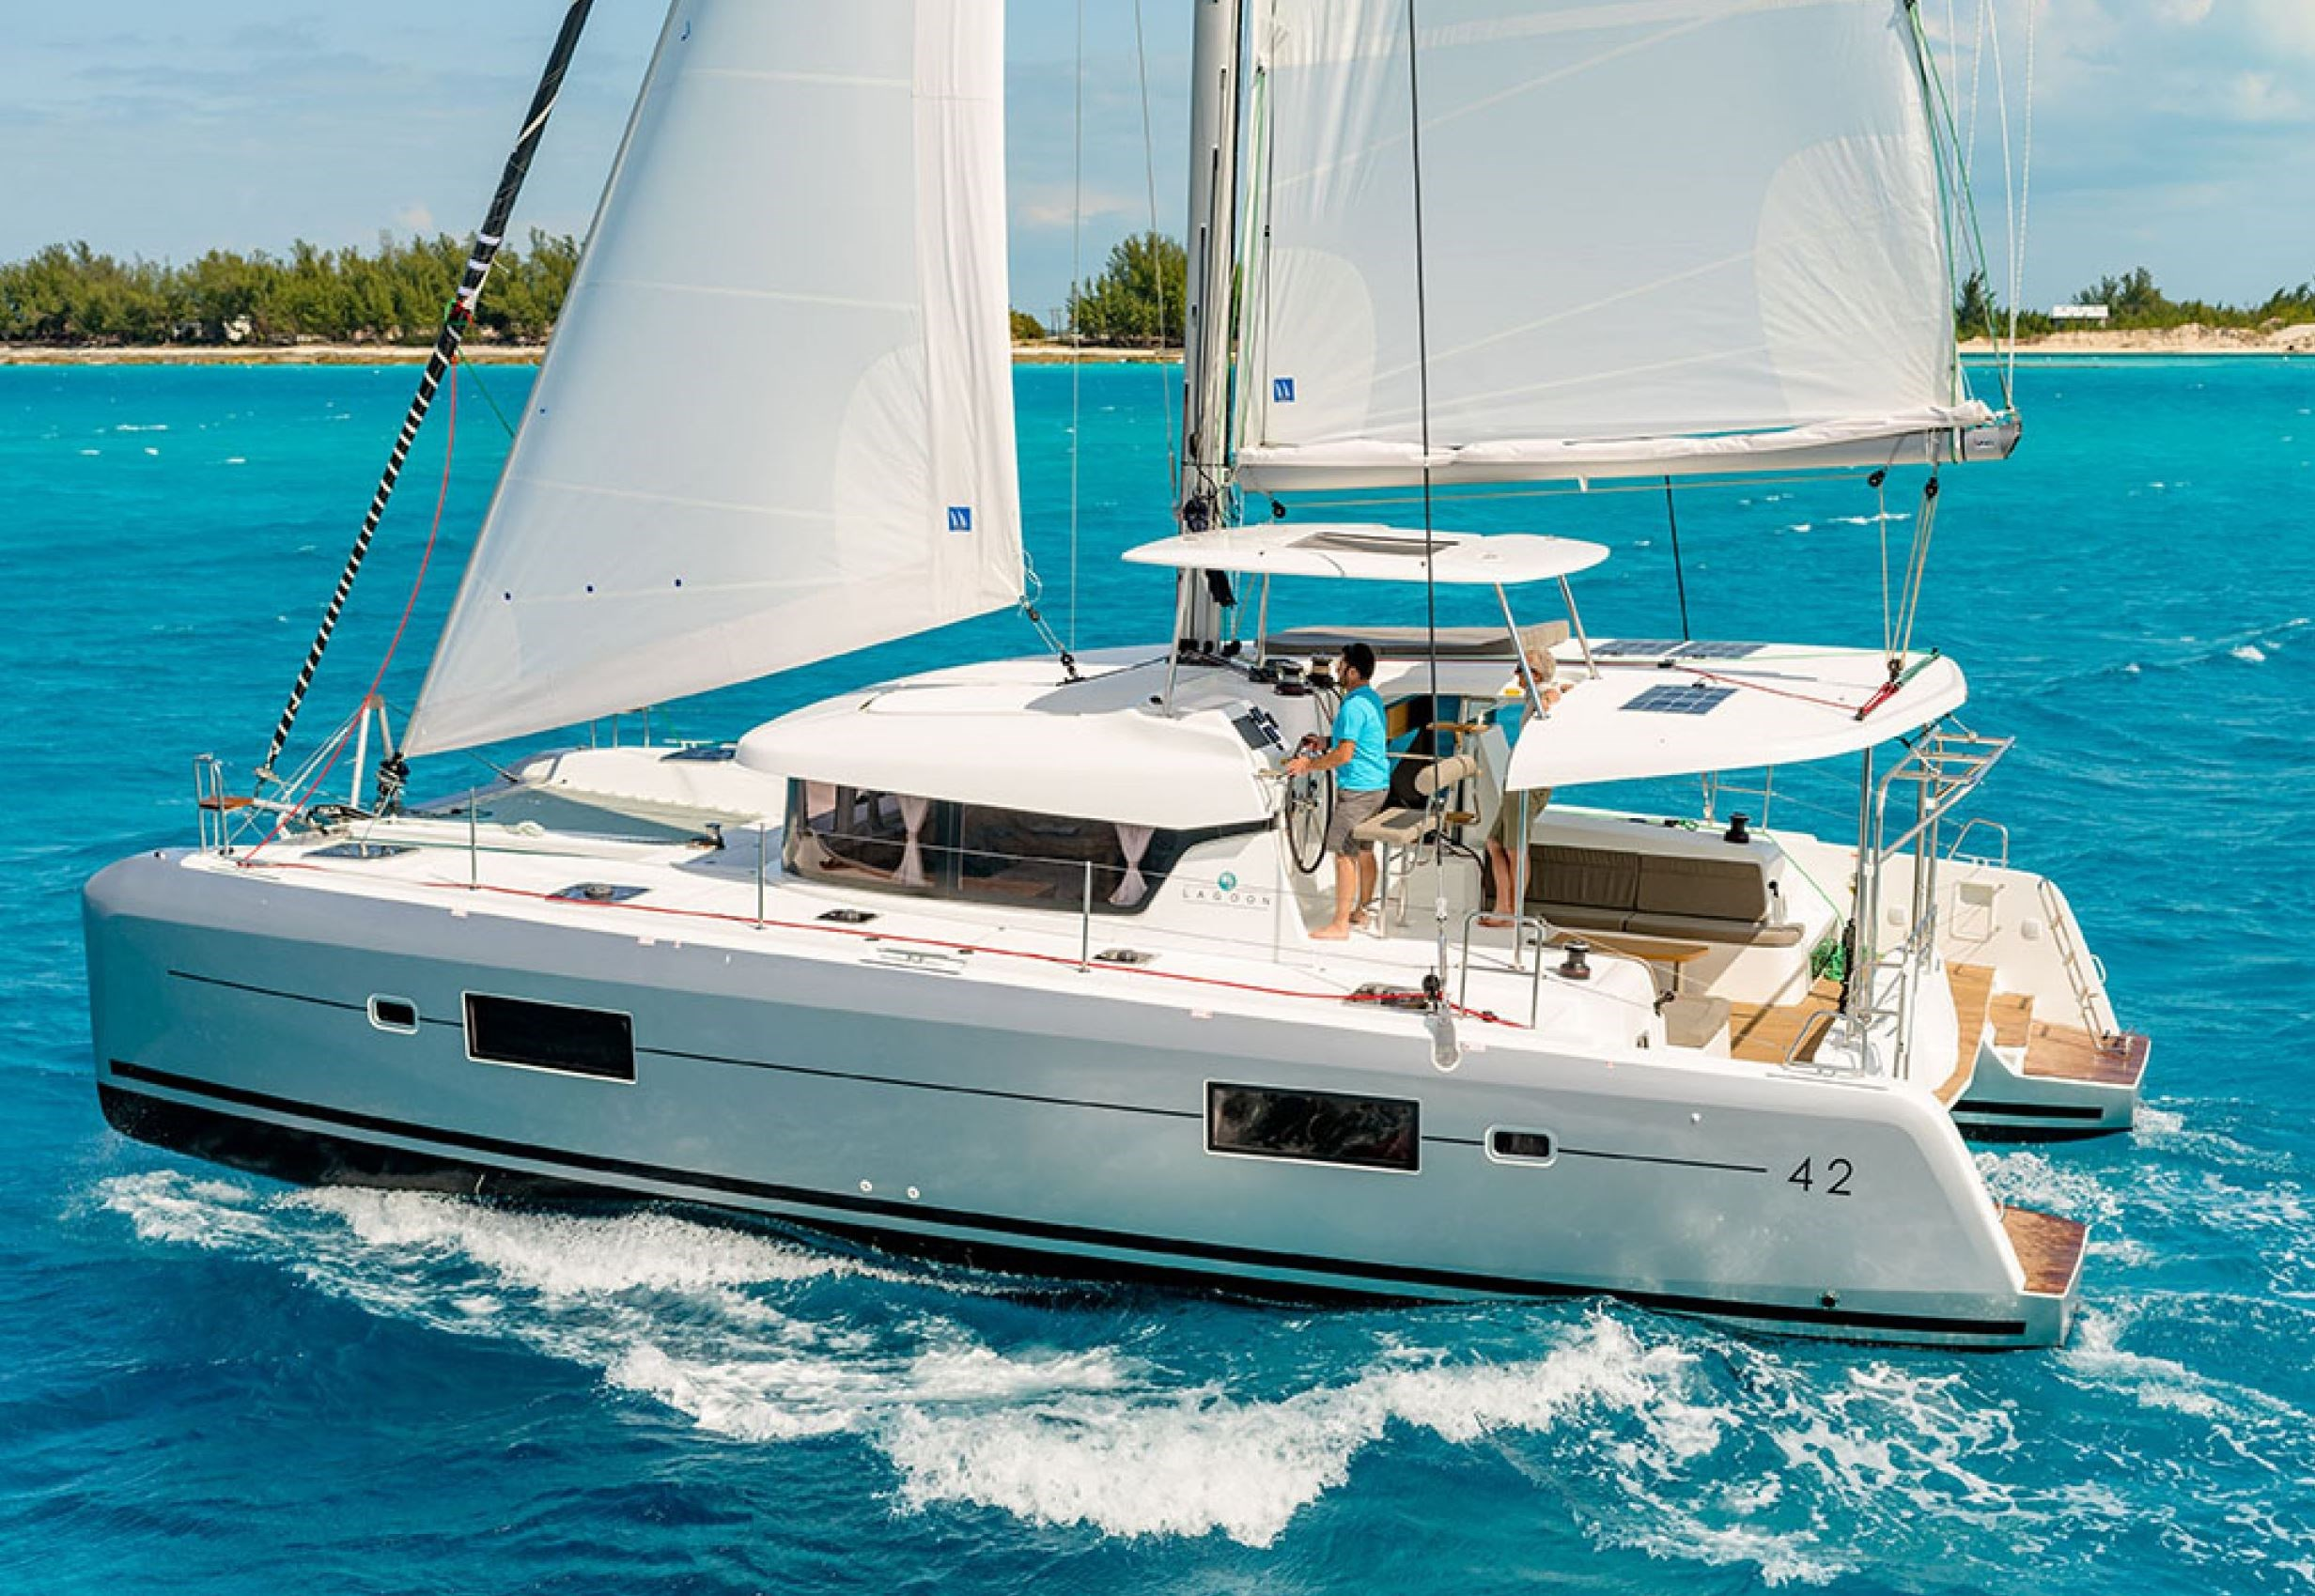 Lagoon 42 Charter Ownership